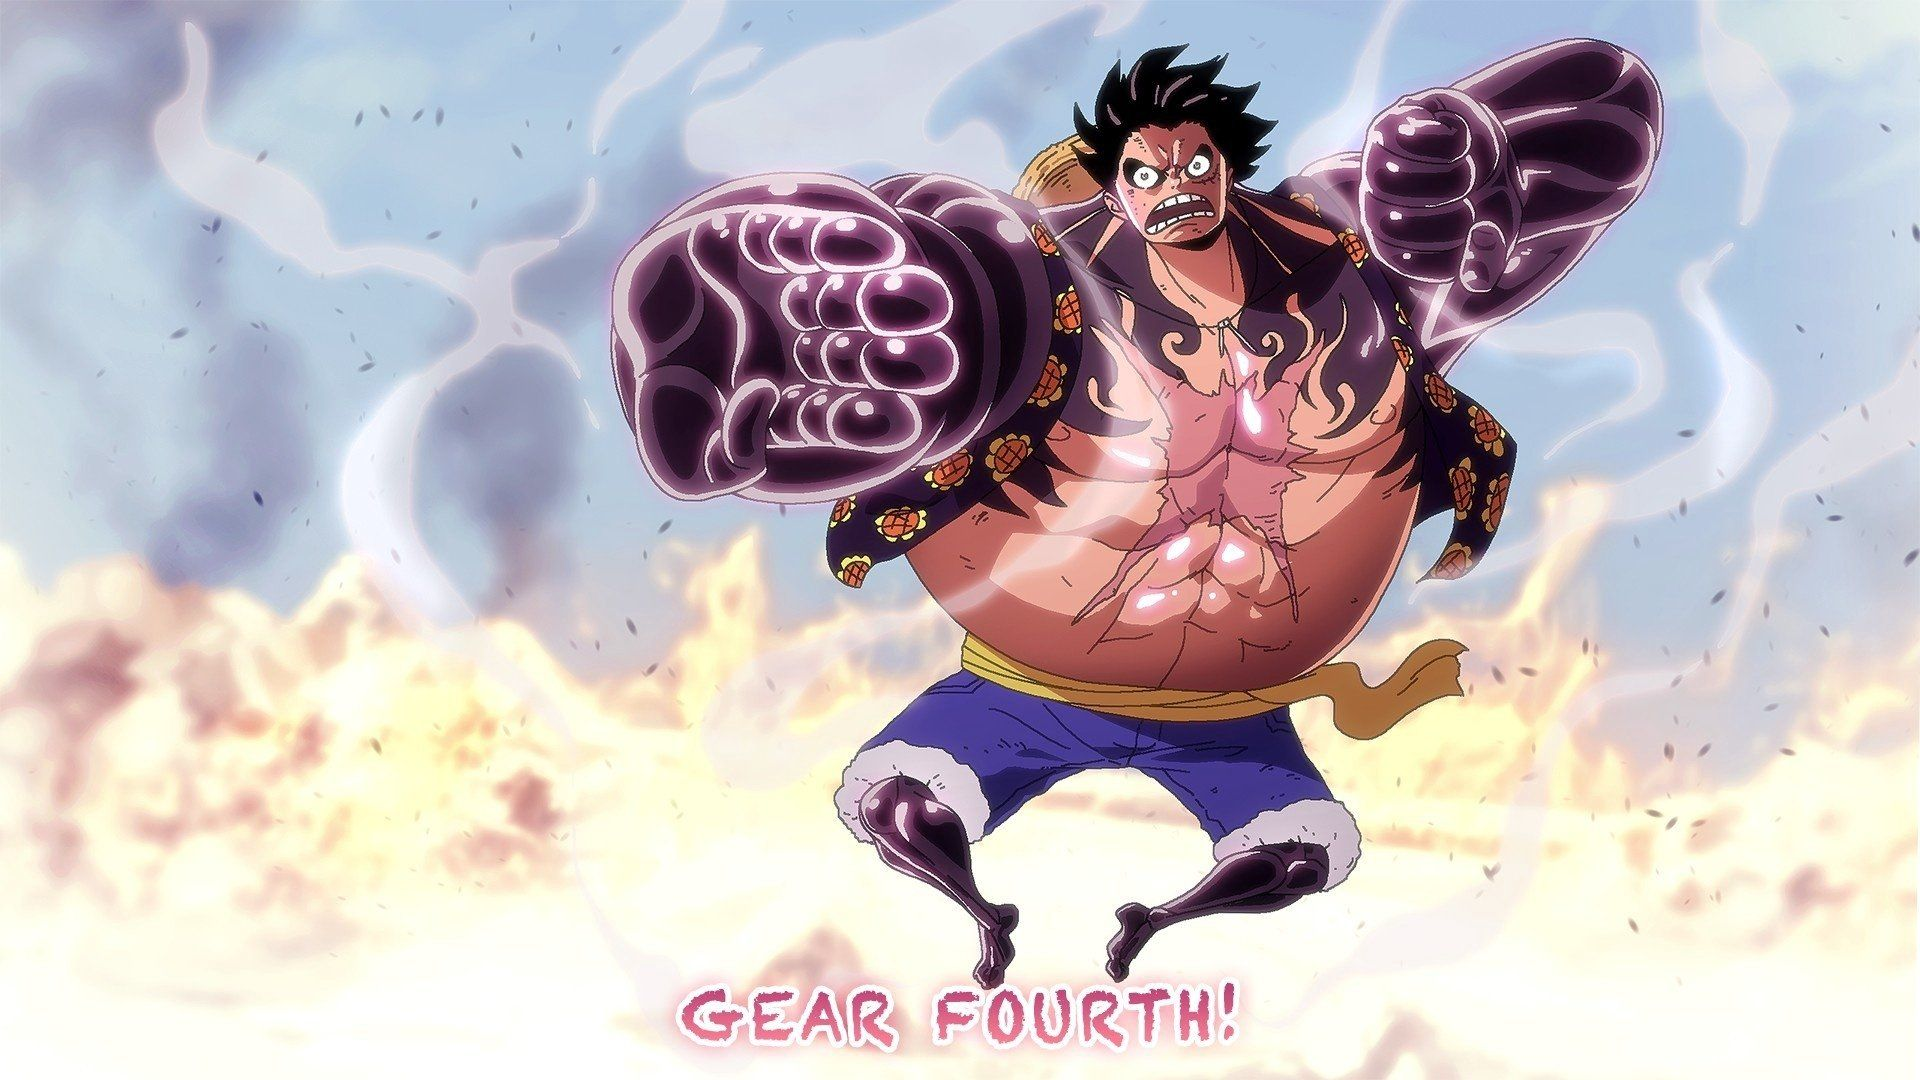 Anime One Piece Monkey D Luffy Haki One Piece Gear Fourth